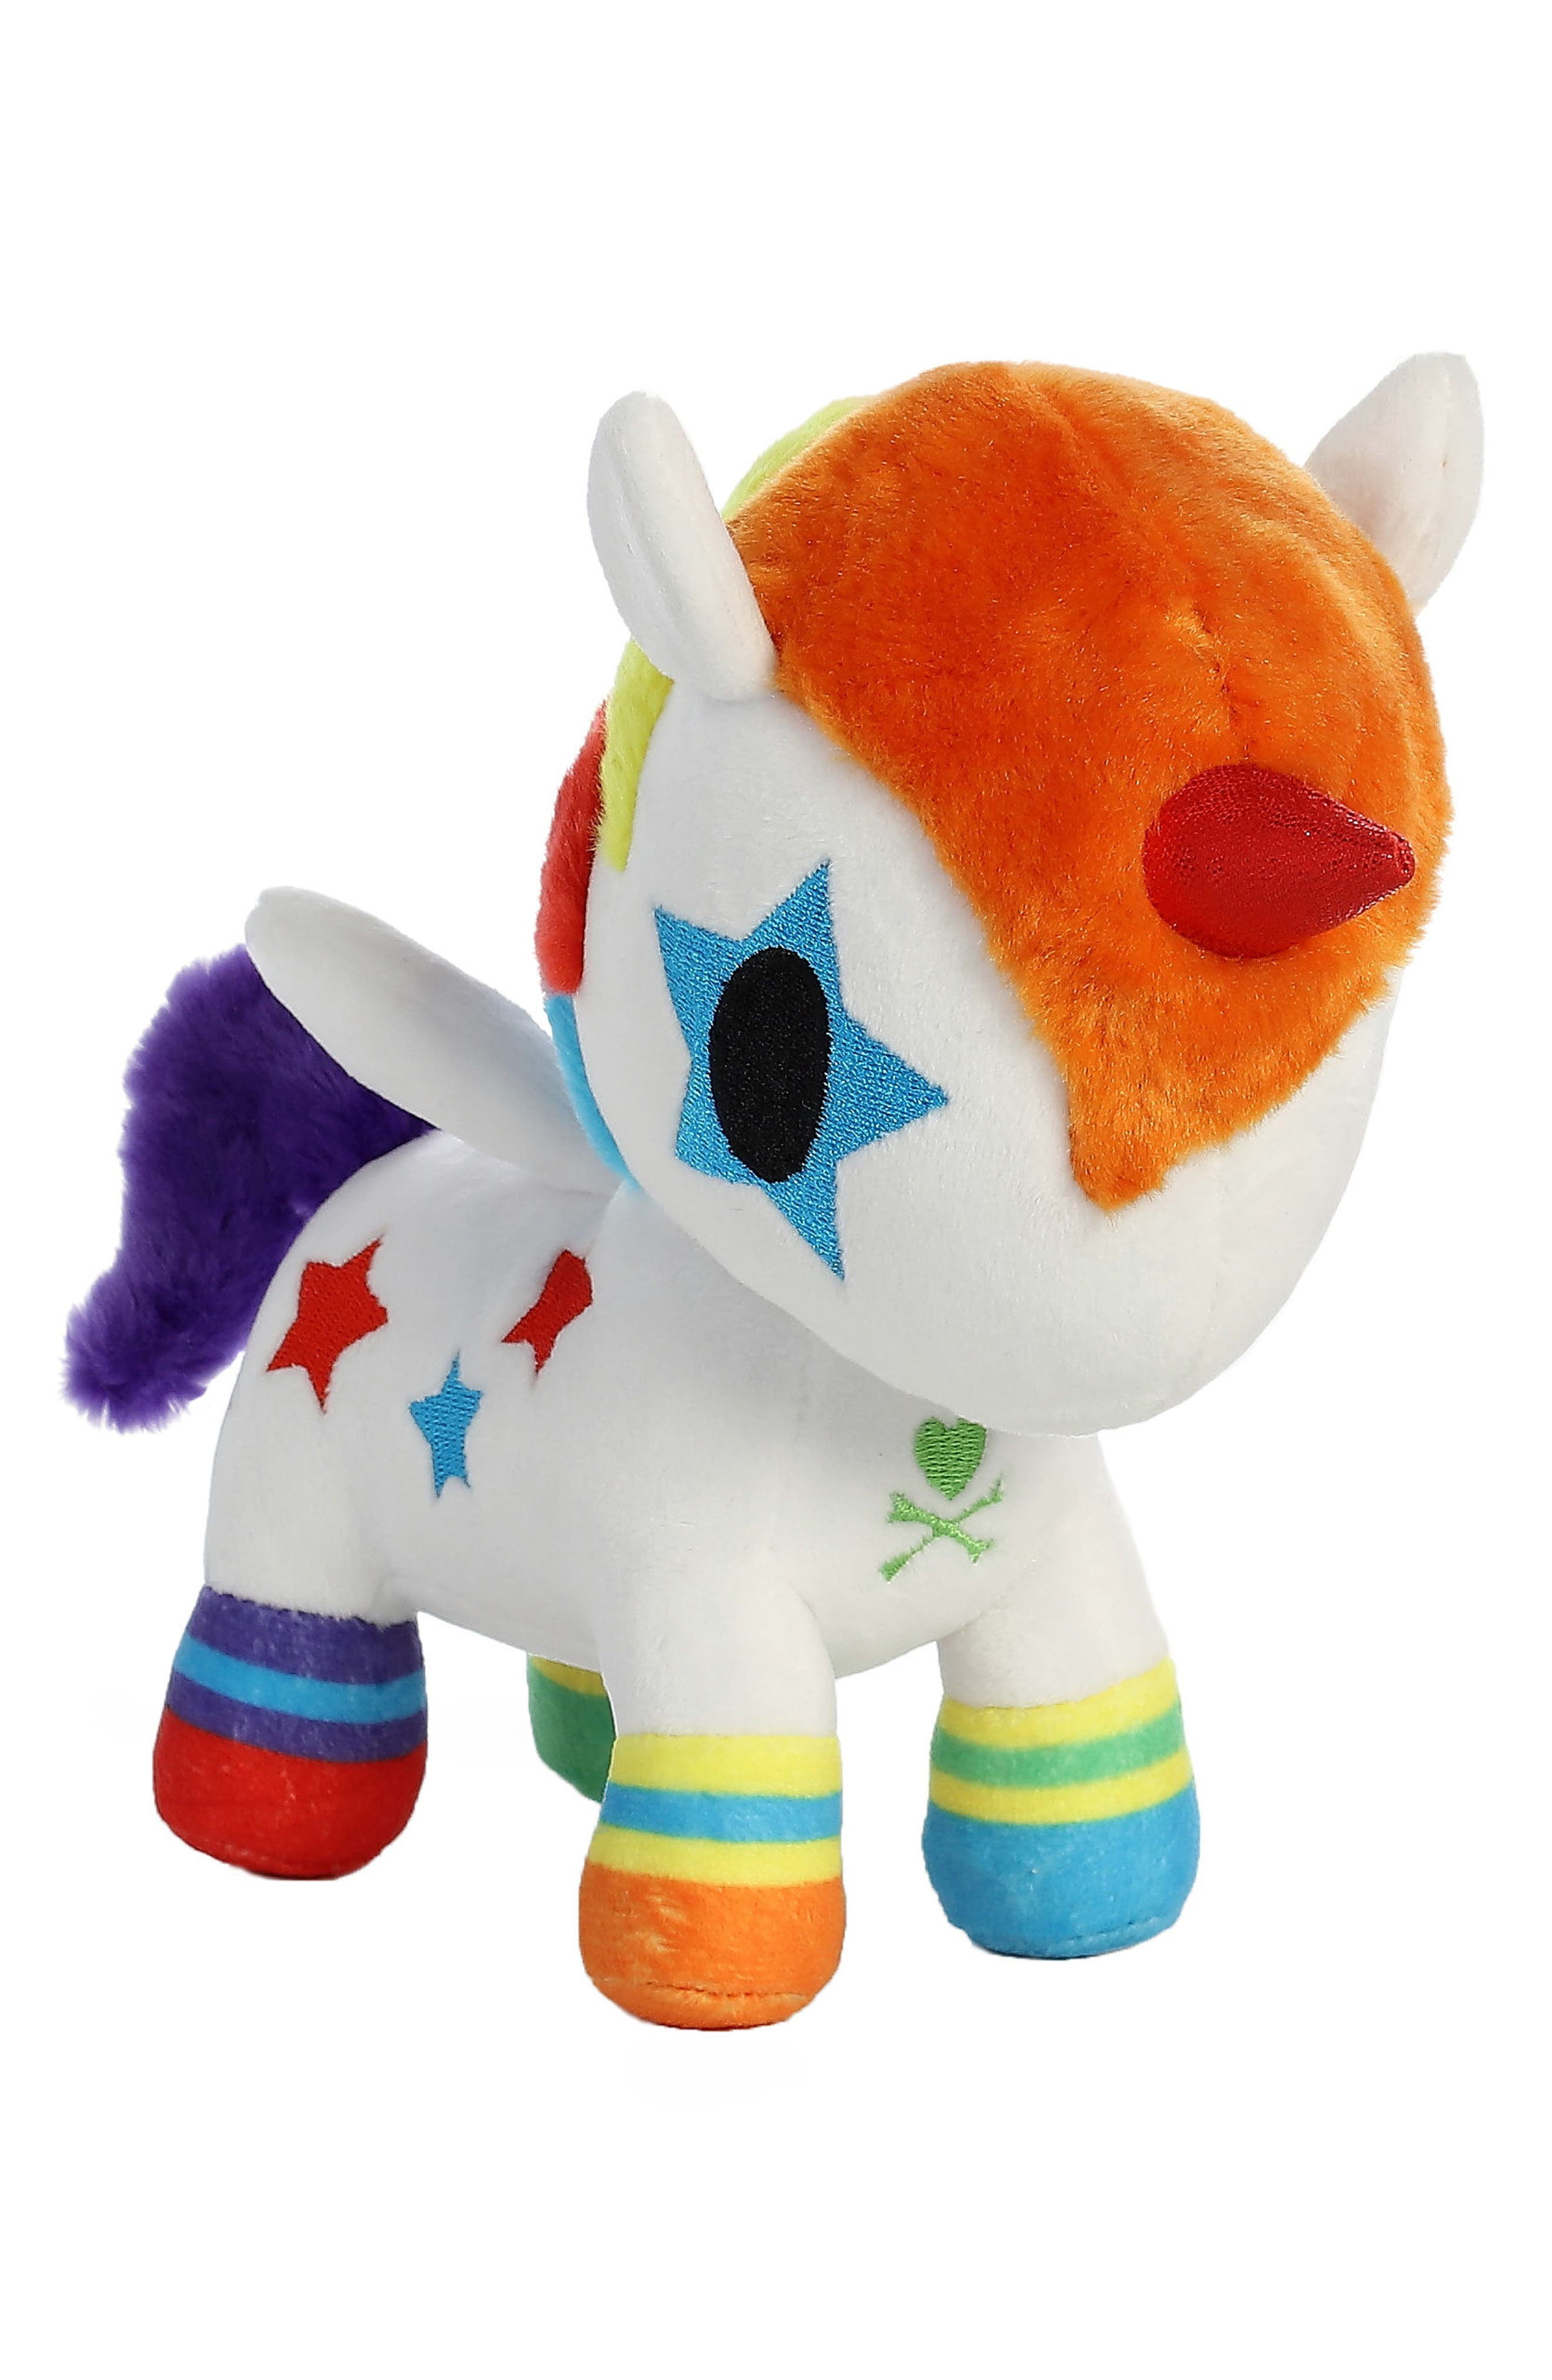 x tokidoki Bowie Unicorno Stuffed Animal,                             Main thumbnail 1, color,                             Orange